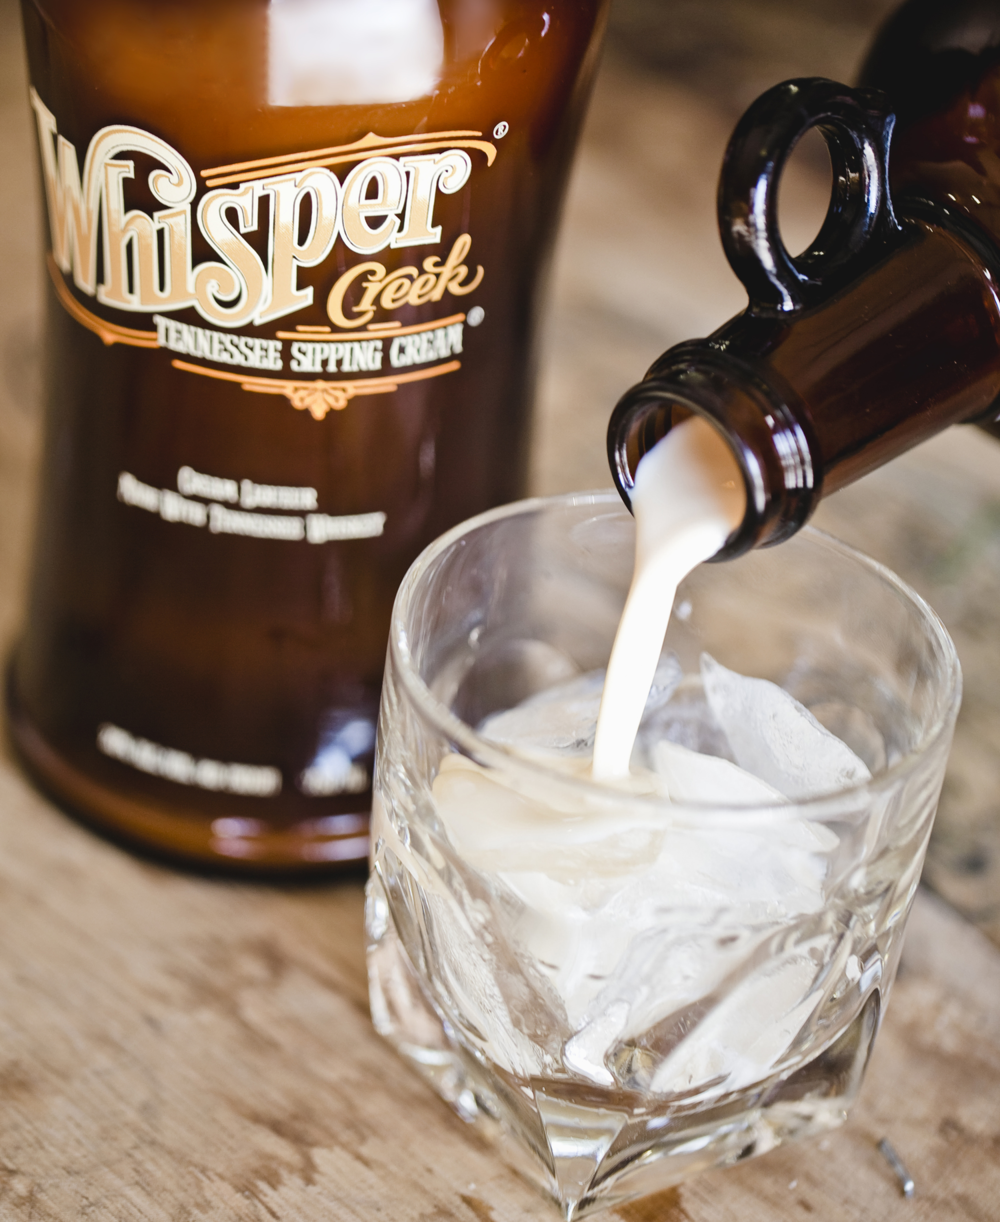 Whisper Creek Tennessee Sipping Cream - best sipped on the rocks